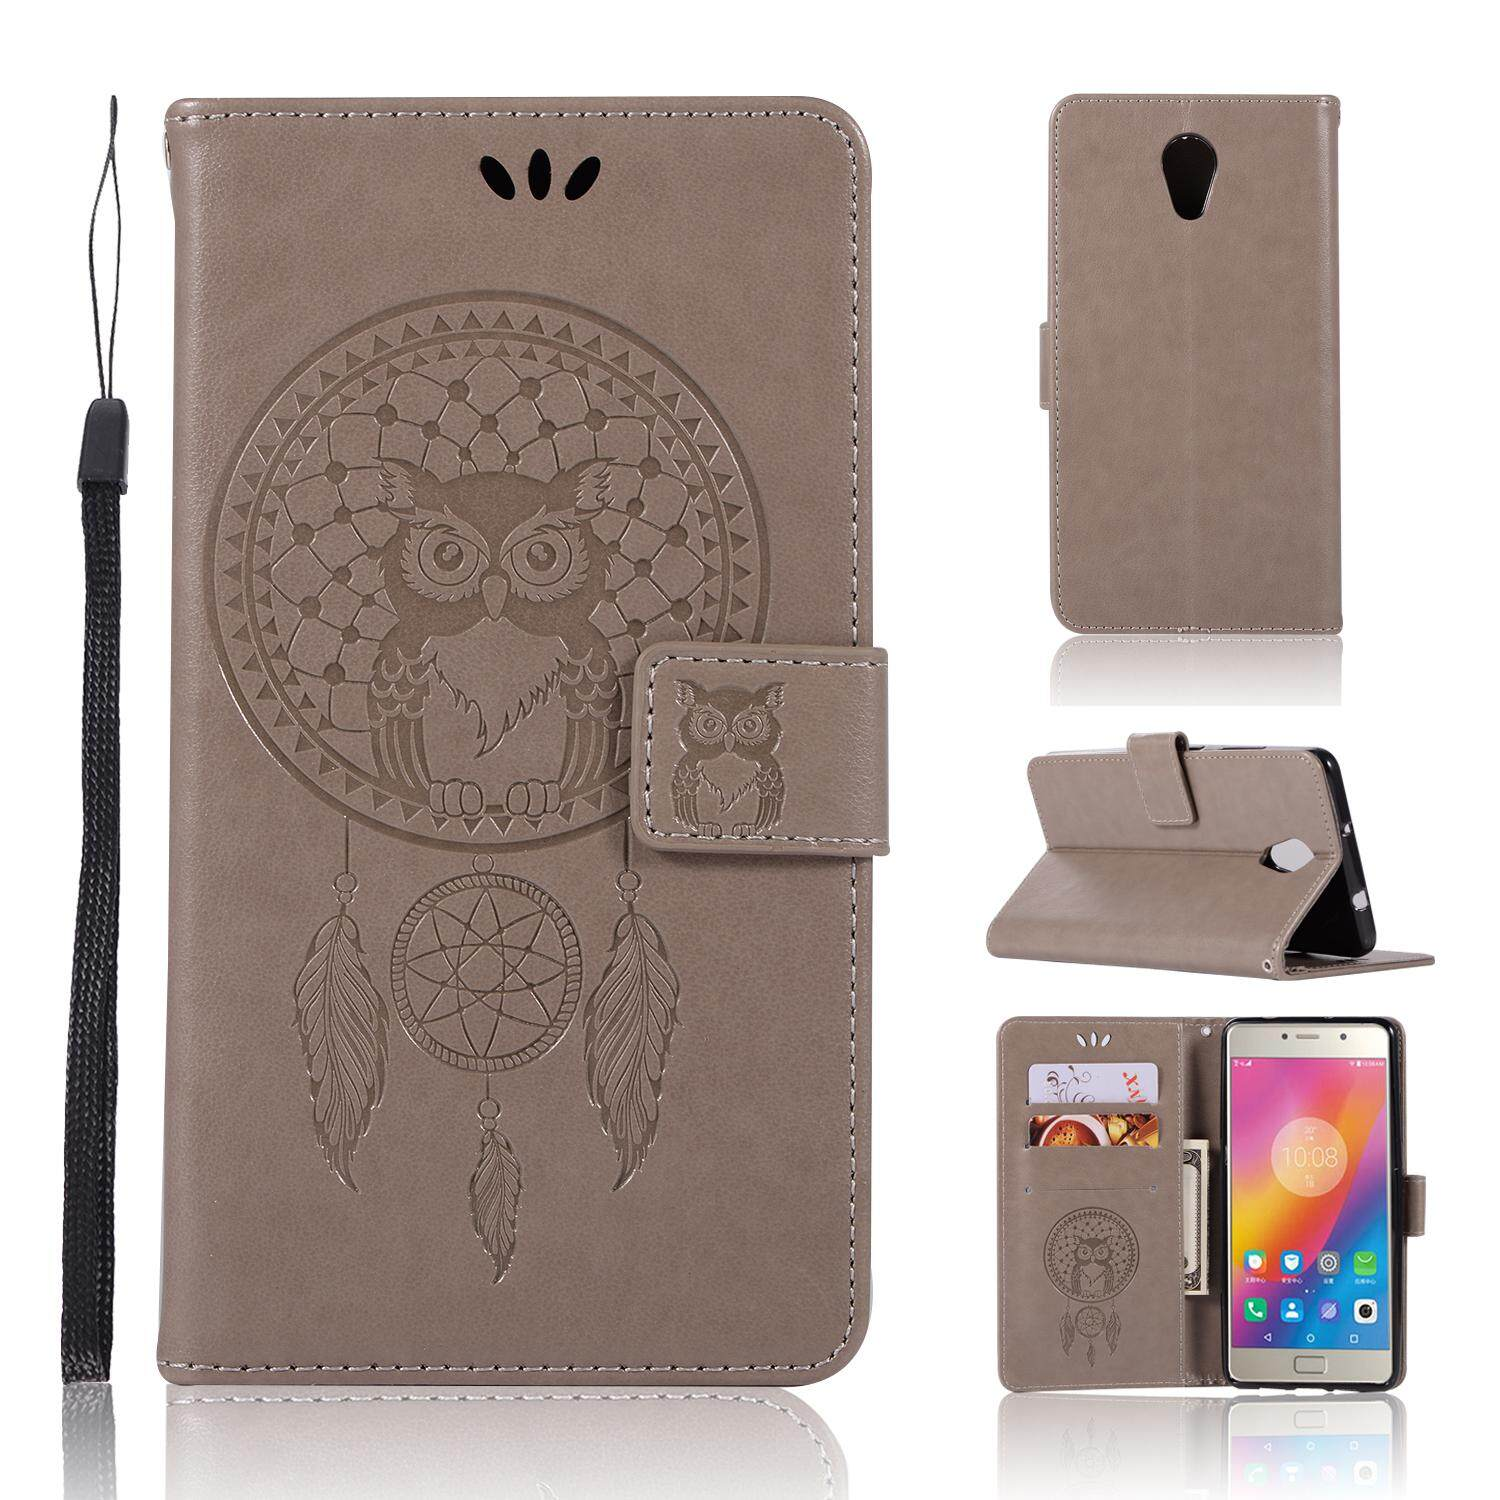 Luxury For Lenovo Vibe P2 Casing , 3d Owl Embossing Leather Folio Flip Case Cover By Life Goes On.